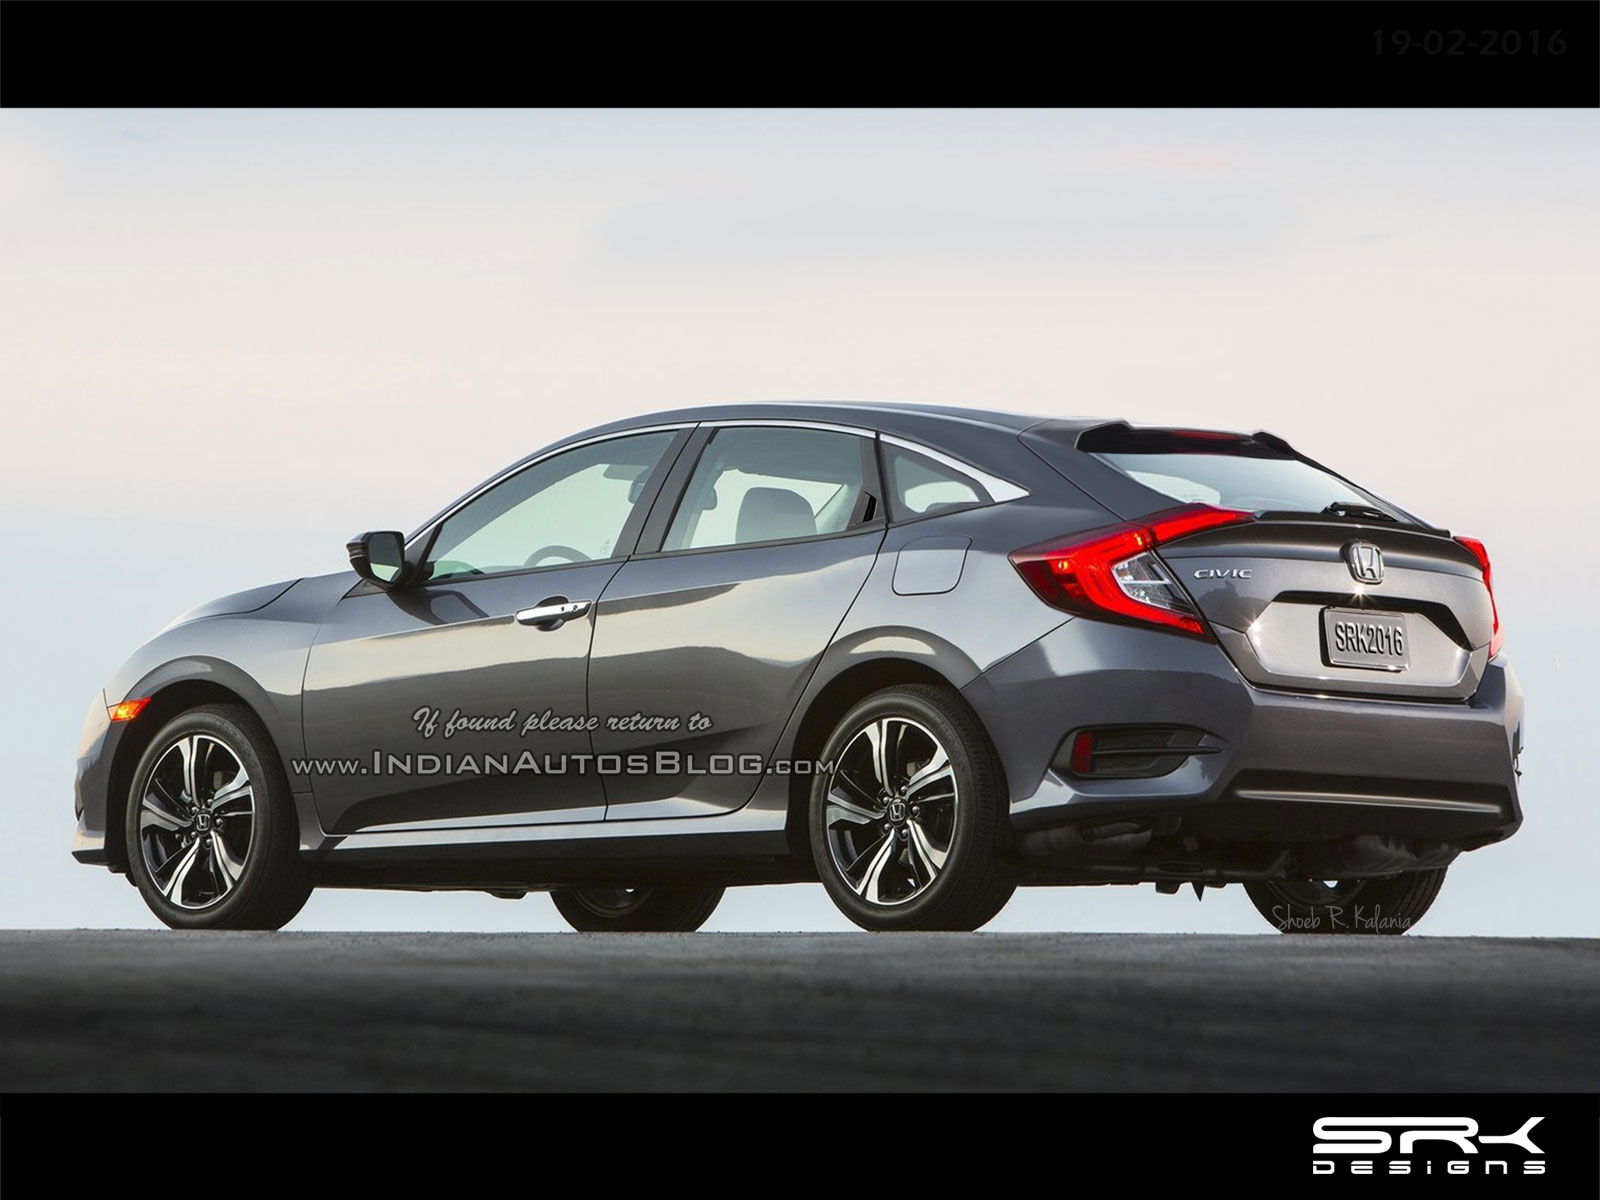 2017-Honda-Civic-Hatchback-IAB-rendering.jpg